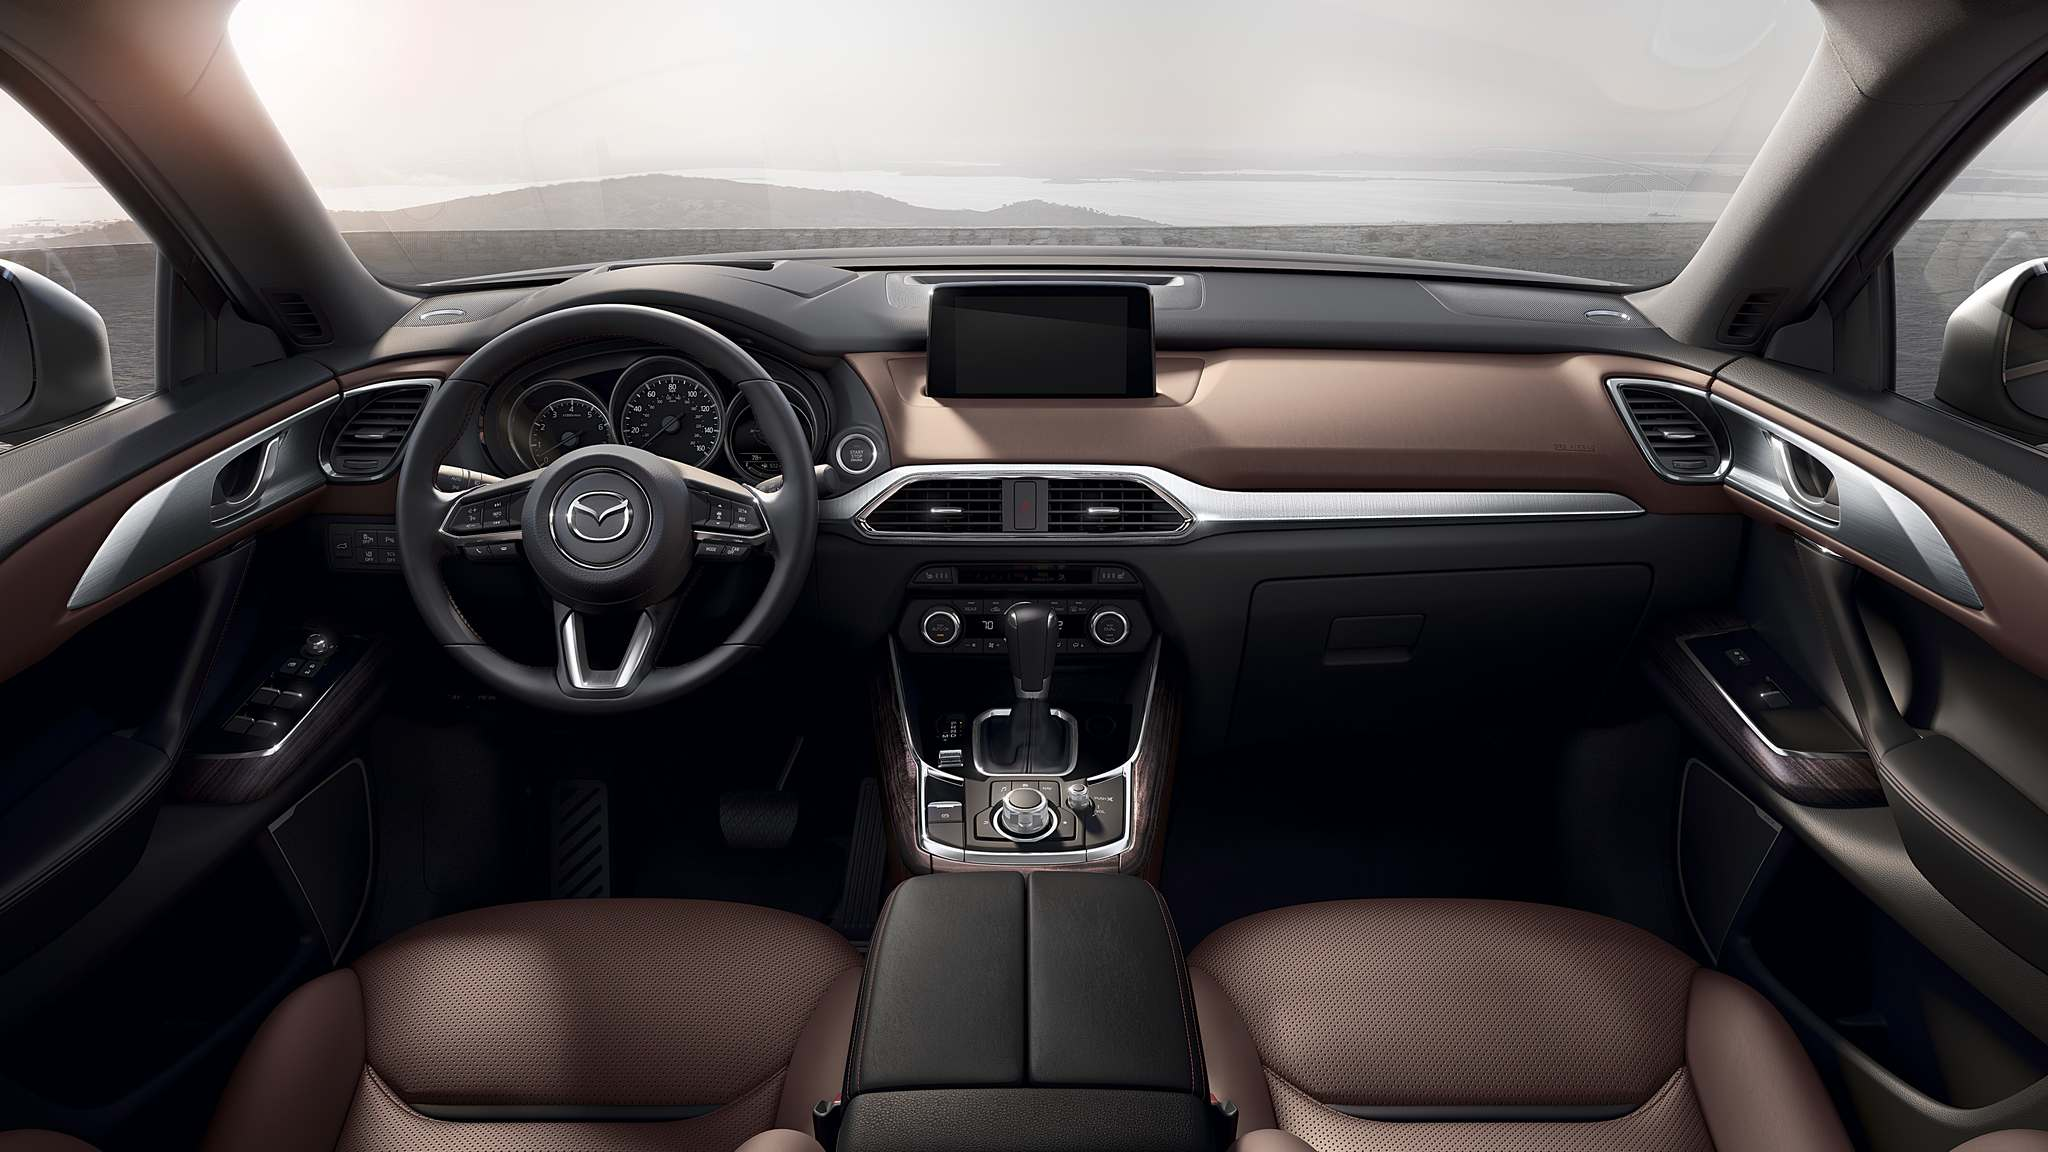 Photos by Mazda CanadaThe 2017 Mazda CX-9 has a comfortable interior, with a design and materials that are superb.